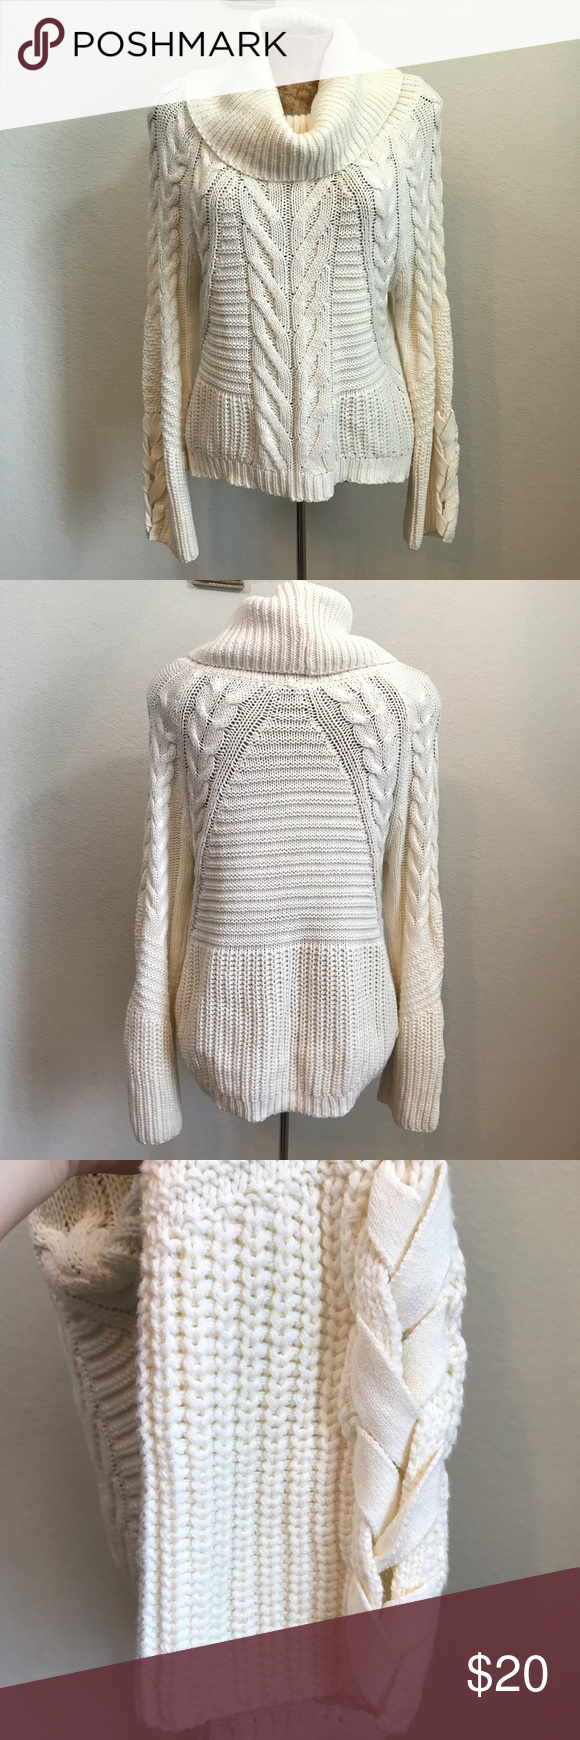 Express Cowl Neck Cable Knit Sweater Sz Xs Bell Bell Sleeve With Lace Up Look Detail Cowl Neck Cotton Acrylic Ma Cable Knit Sweaters Knitted Sweaters Cowl Neck